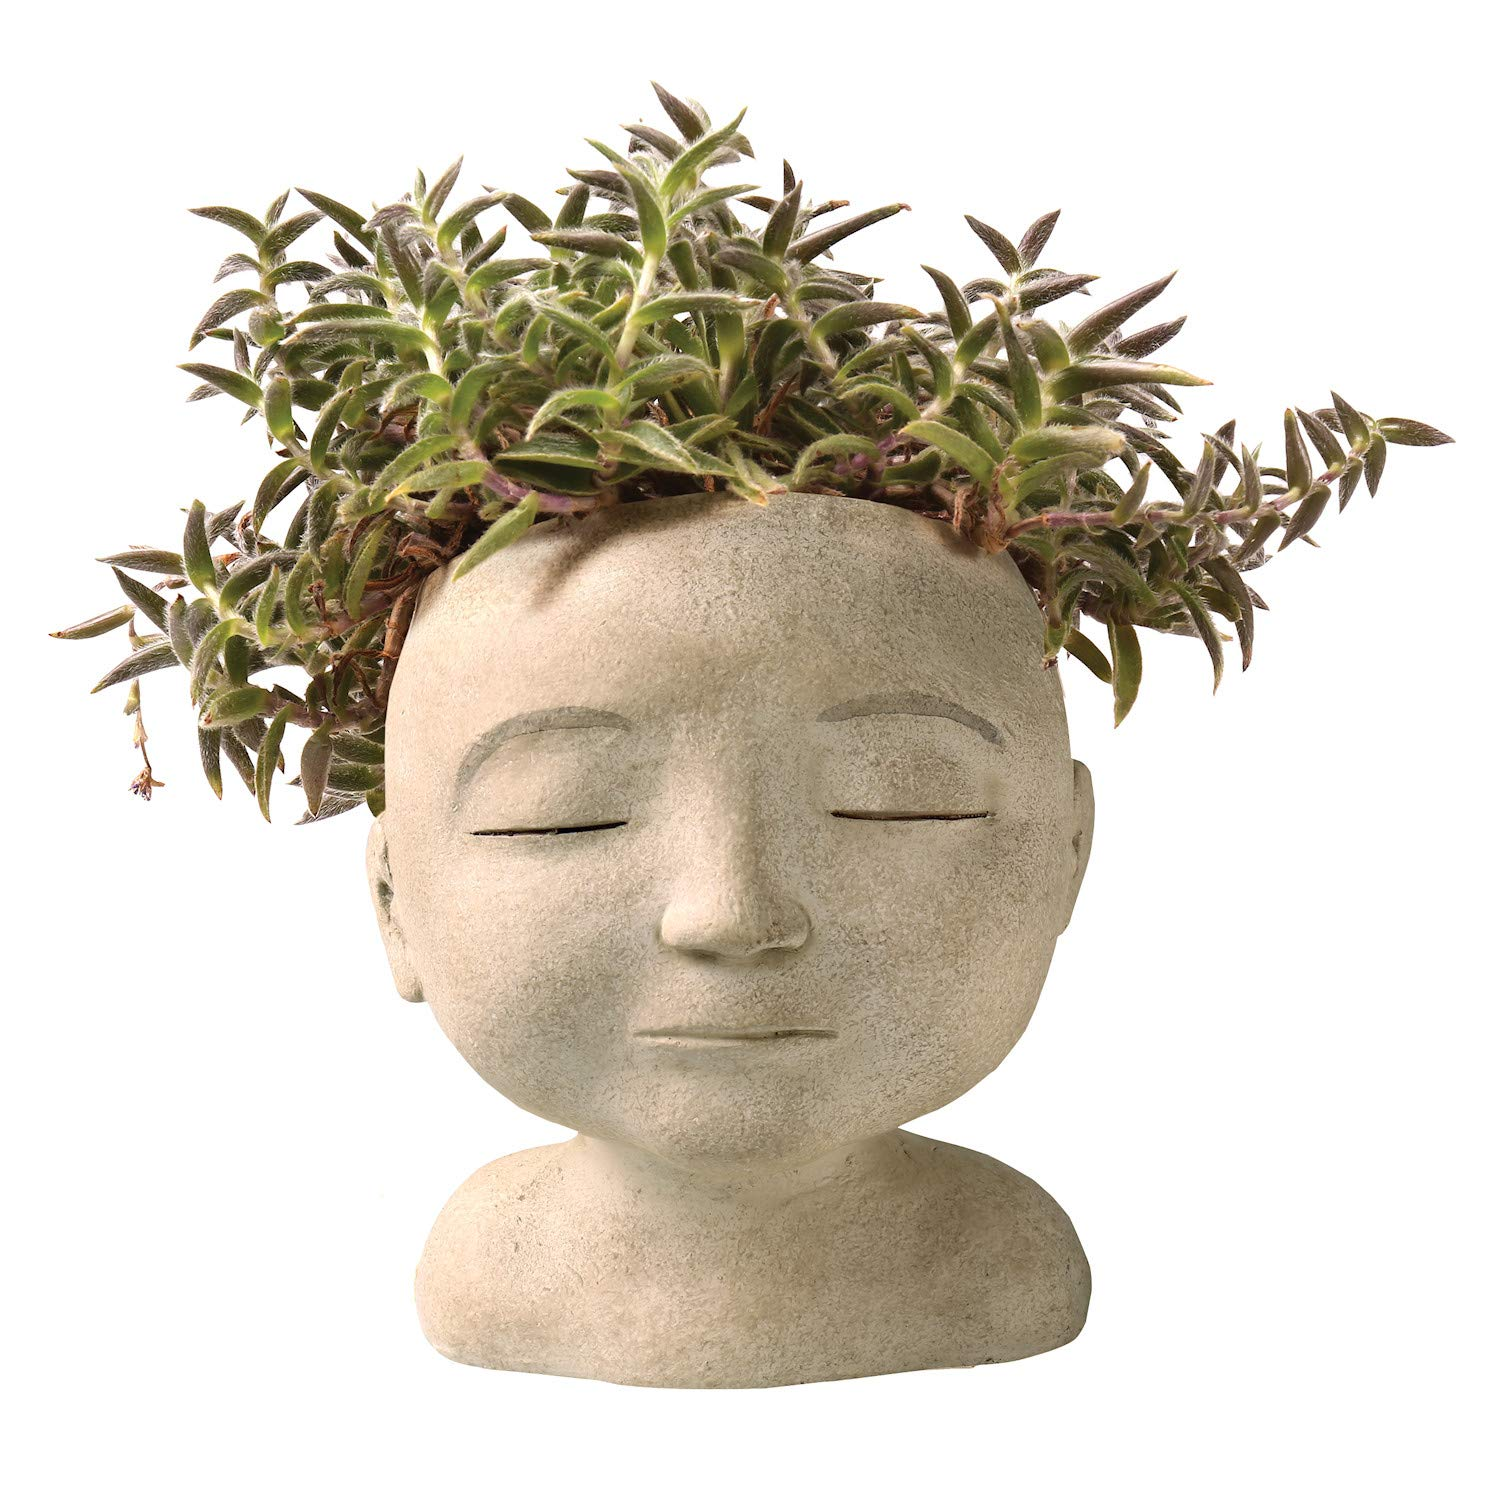 "ART & ARTIFACT Head of a Man Indoor/Outdoor Resin Planter - Plants Look Like Hair, 9"" Tall"